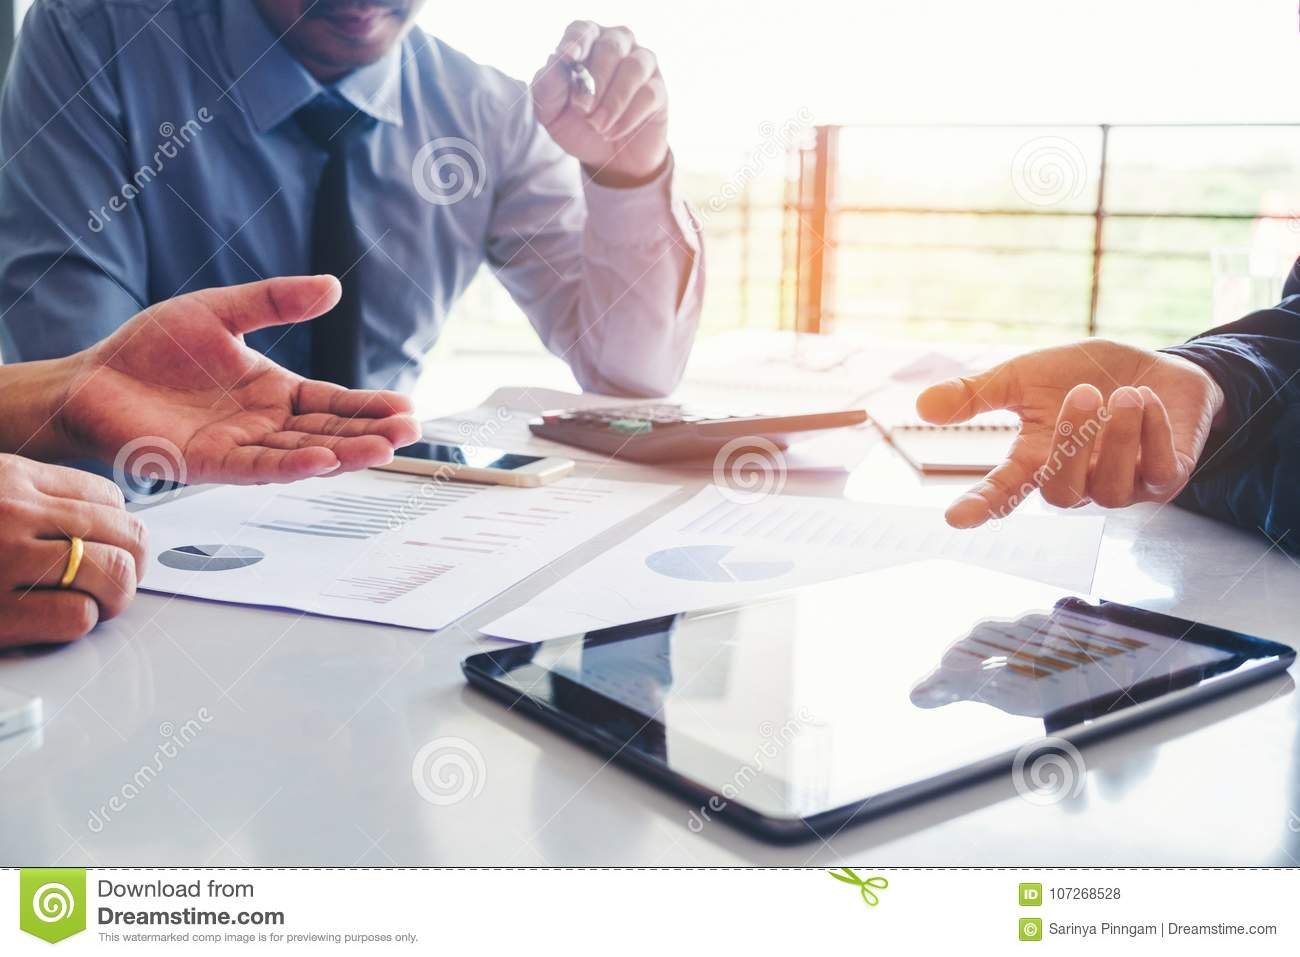 Business People meeting Planning Strategy Analysis on new business project Concept